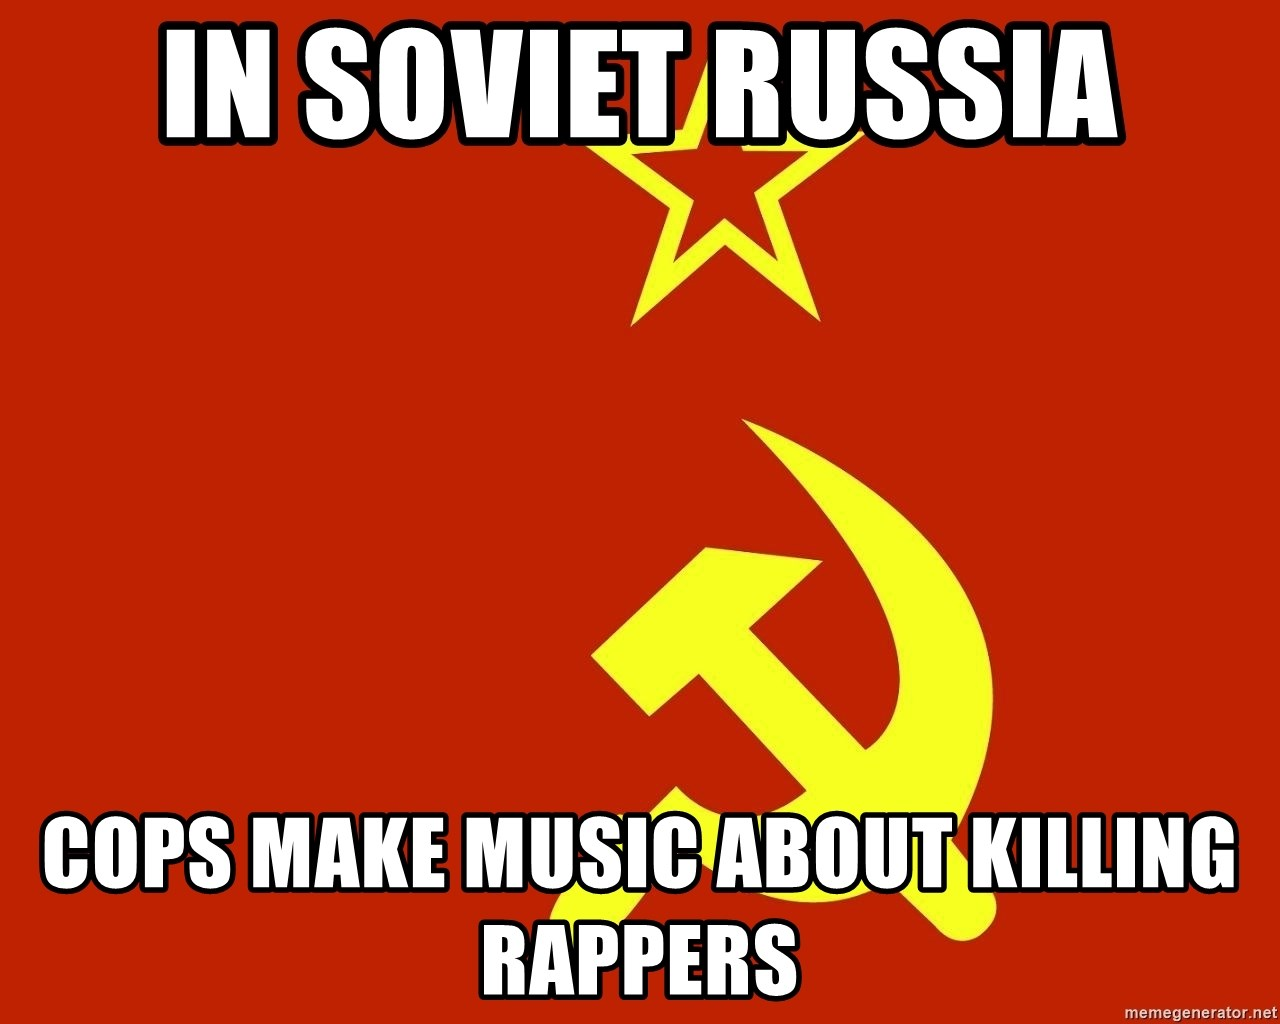 In Soviet Russia - in soviet russia cops make music about killing rappers